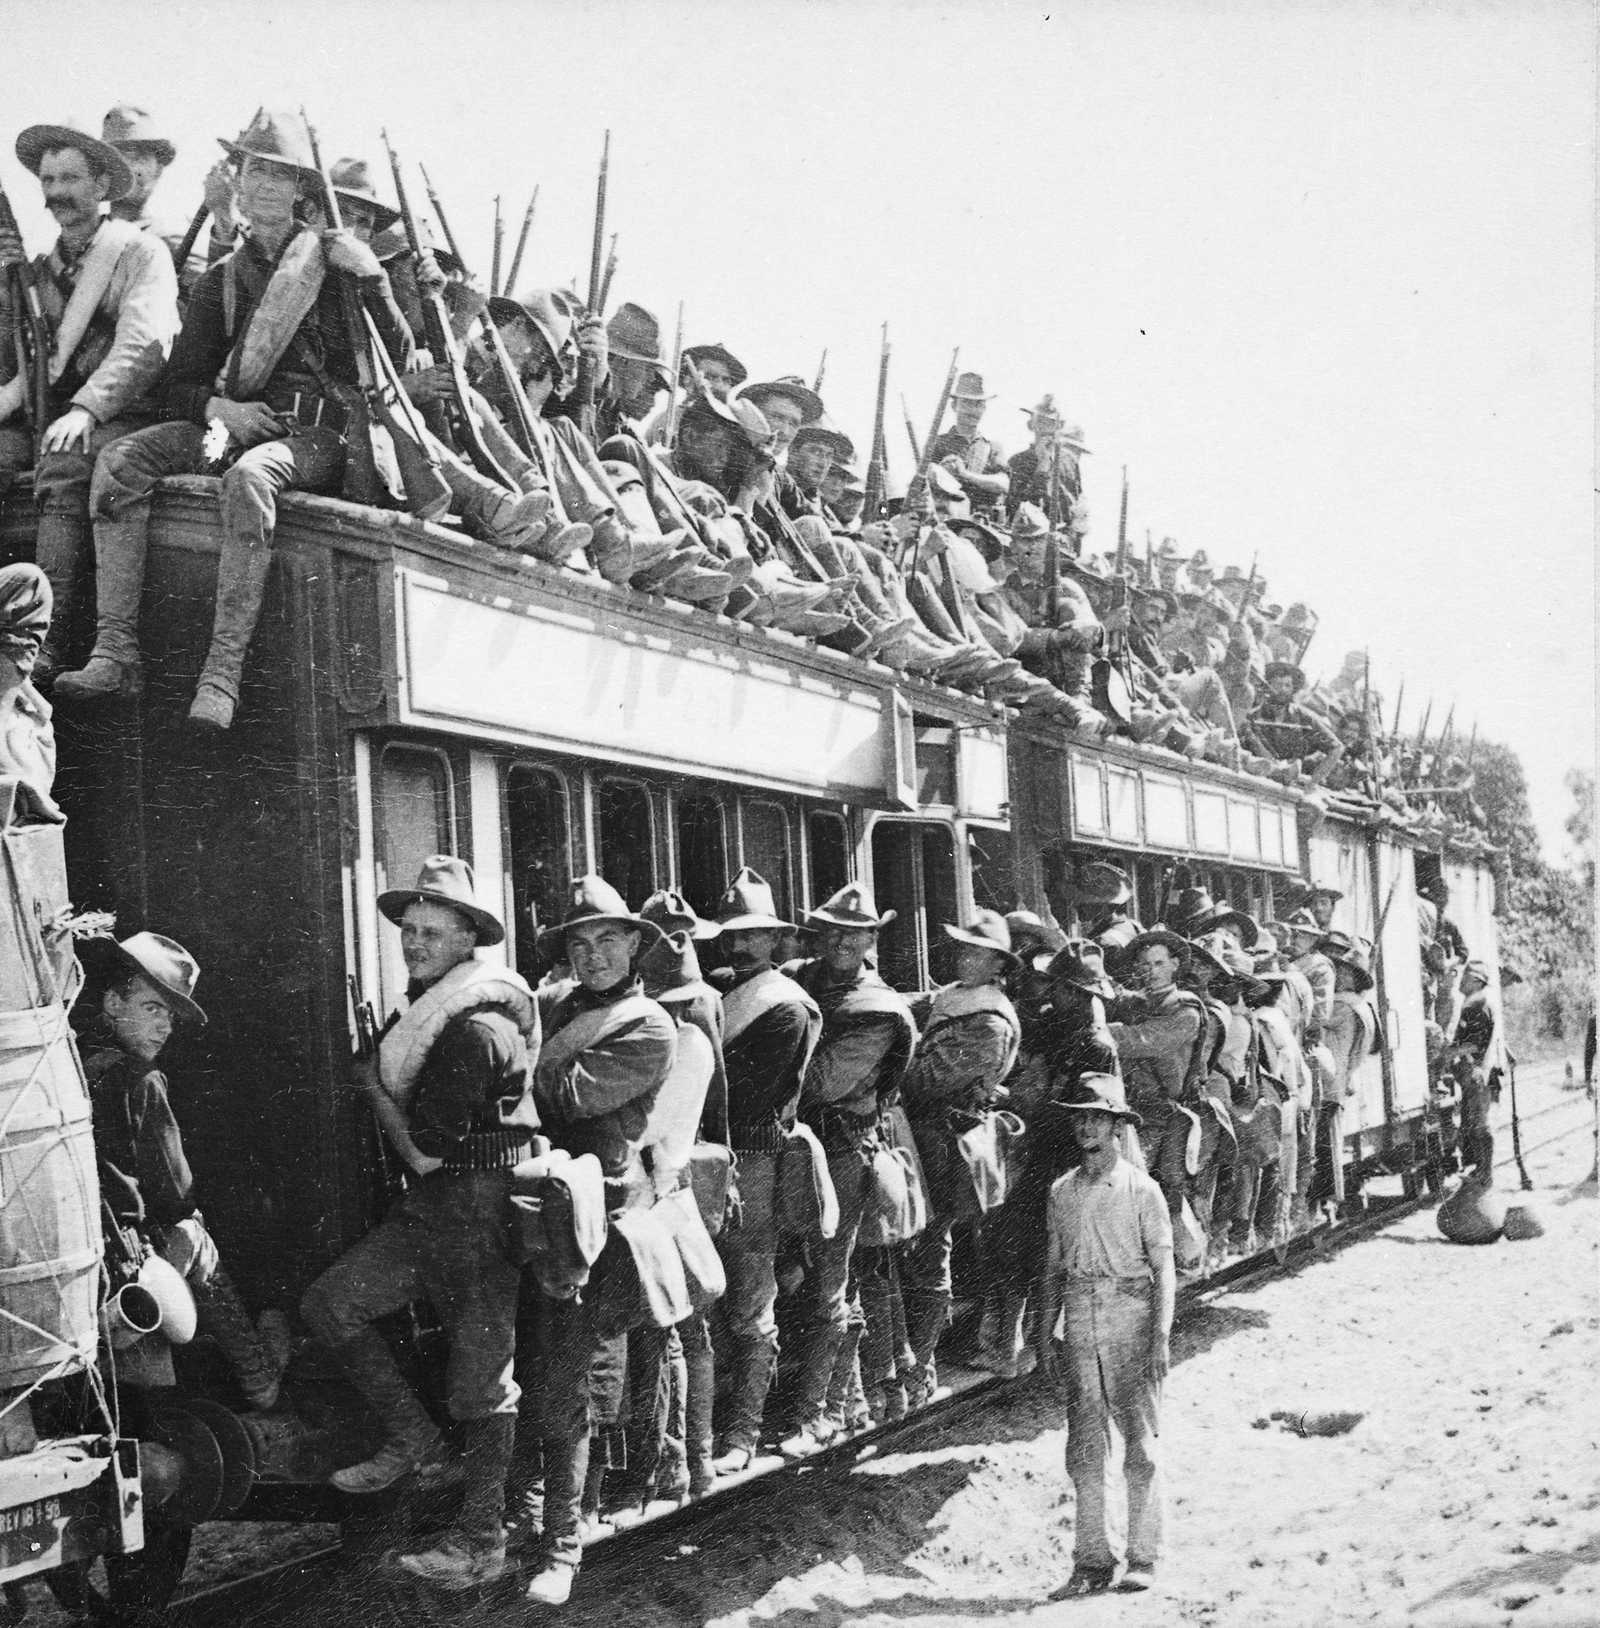 U.S. troops crowd a train